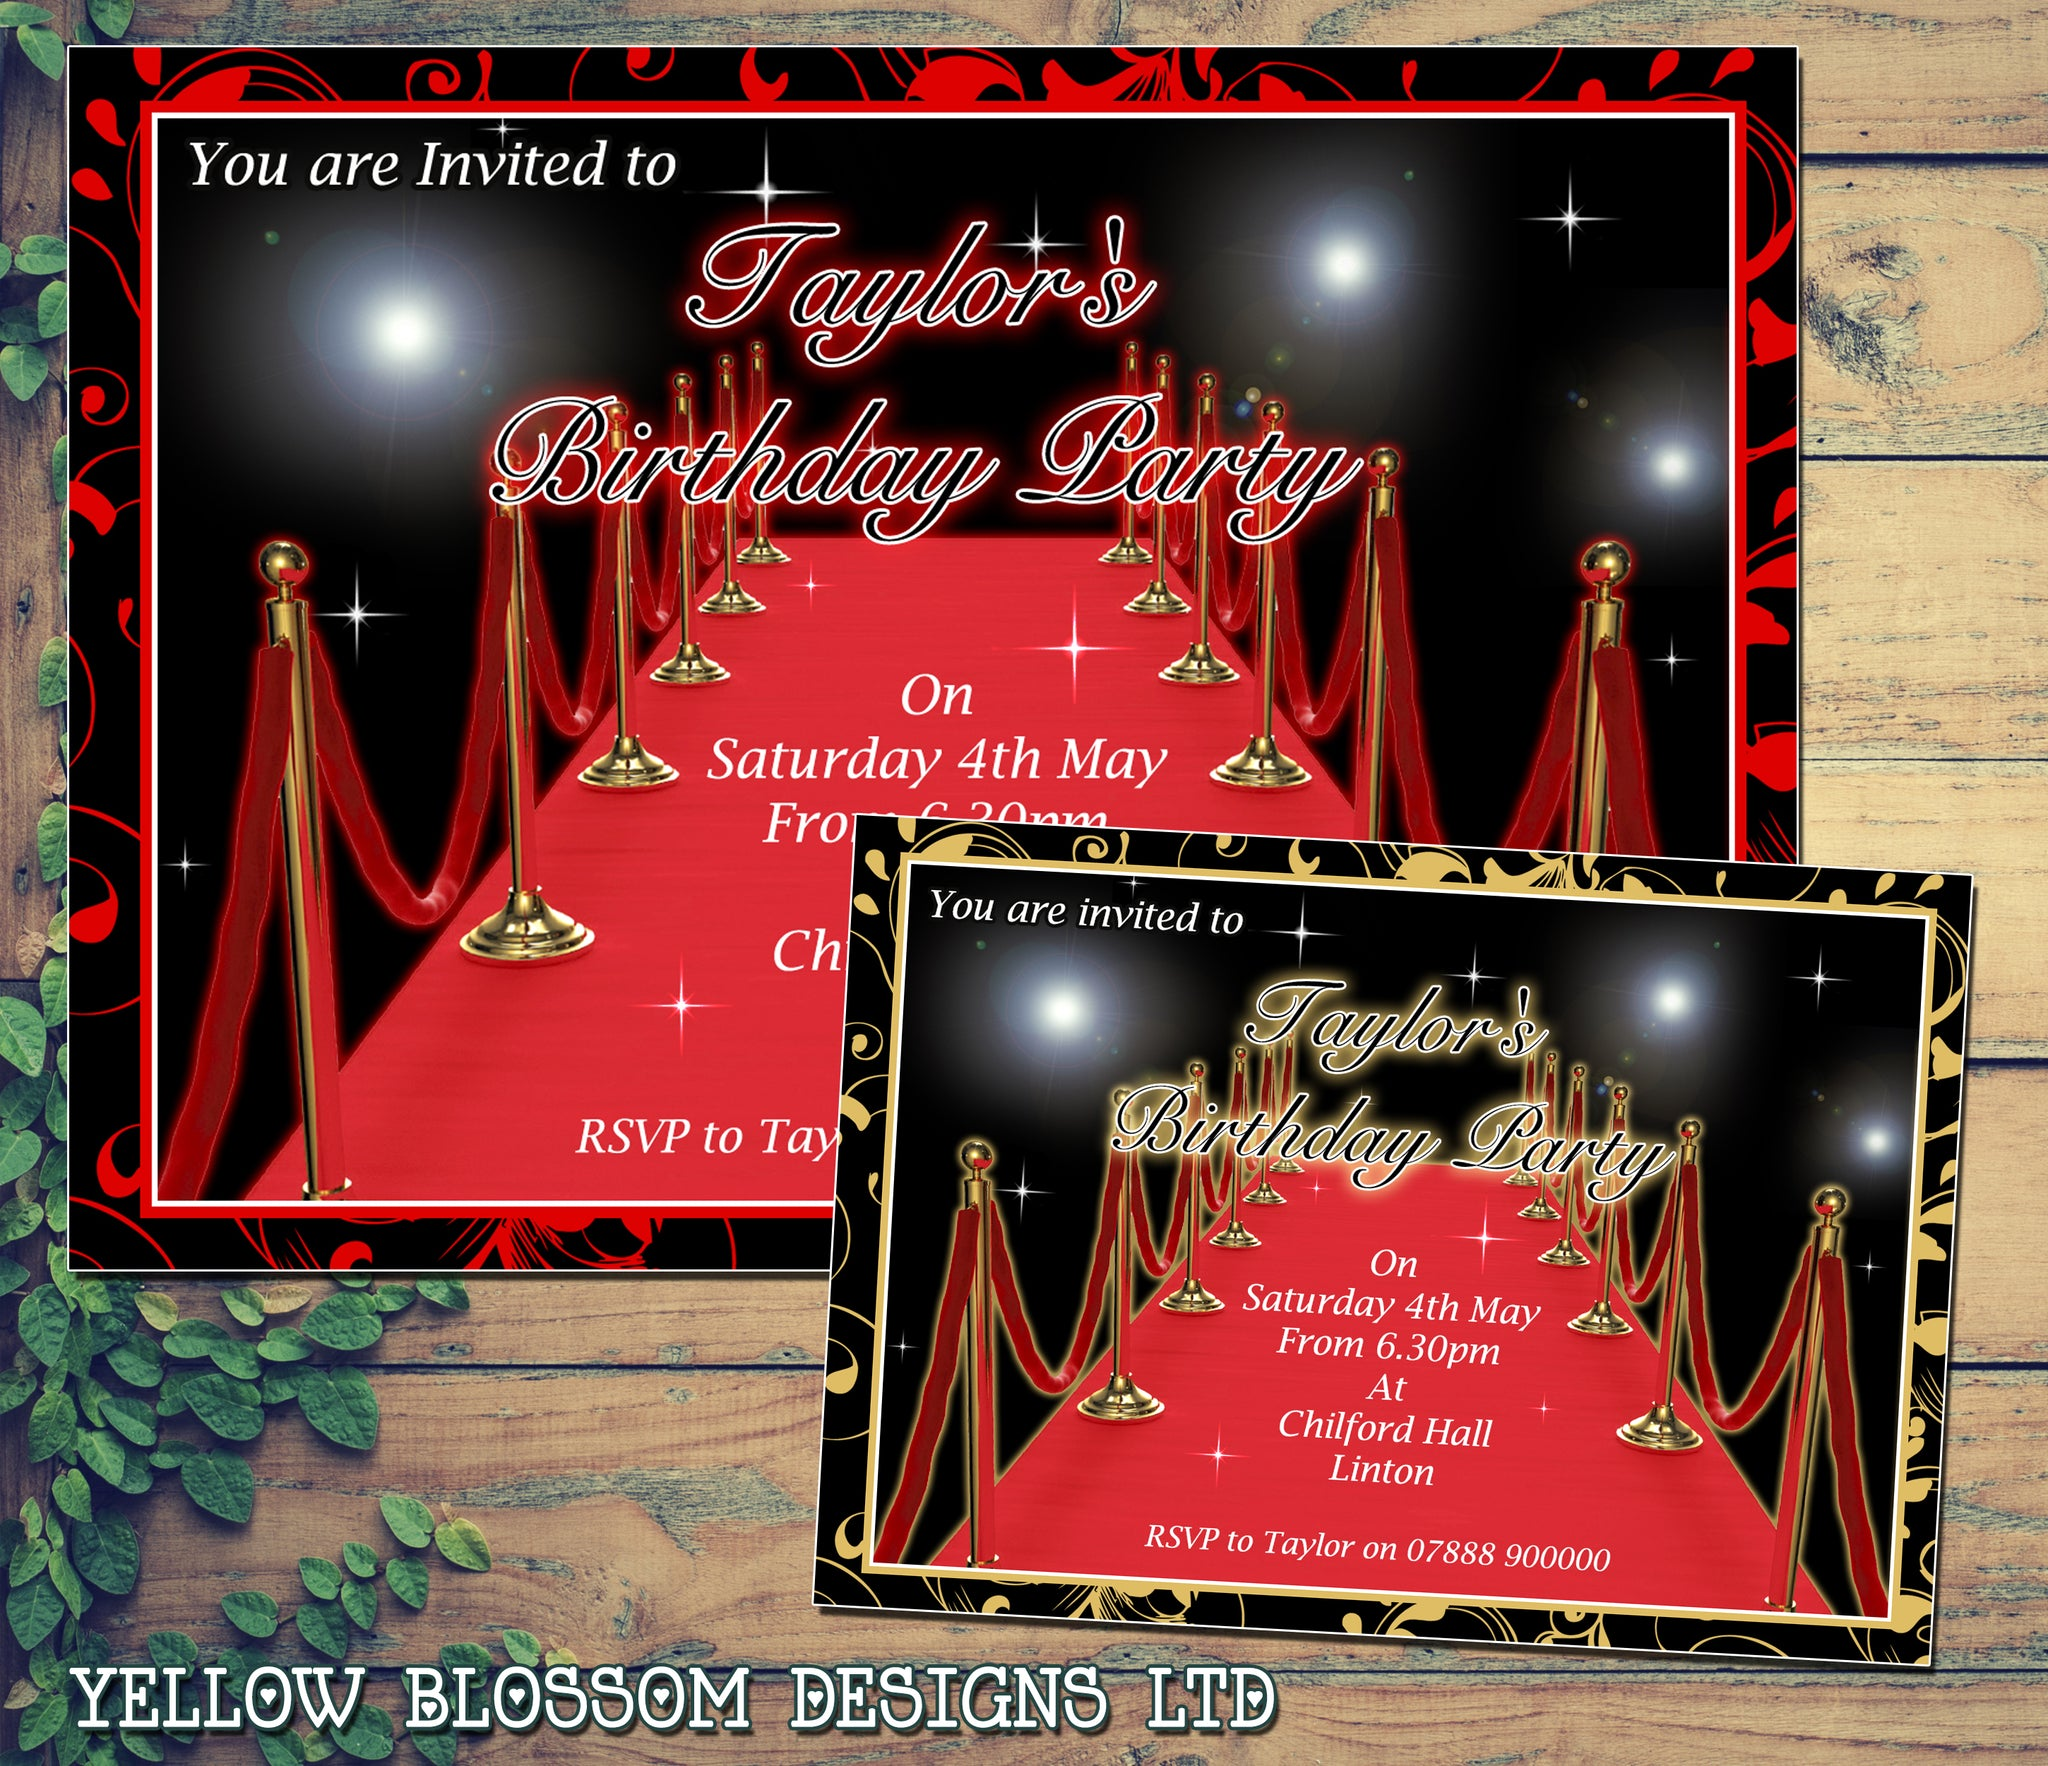 Personalised Birthday Invitations Female Male Unisex Joint Party 18th 21st 30th 40th 50th 60th Oscars Red